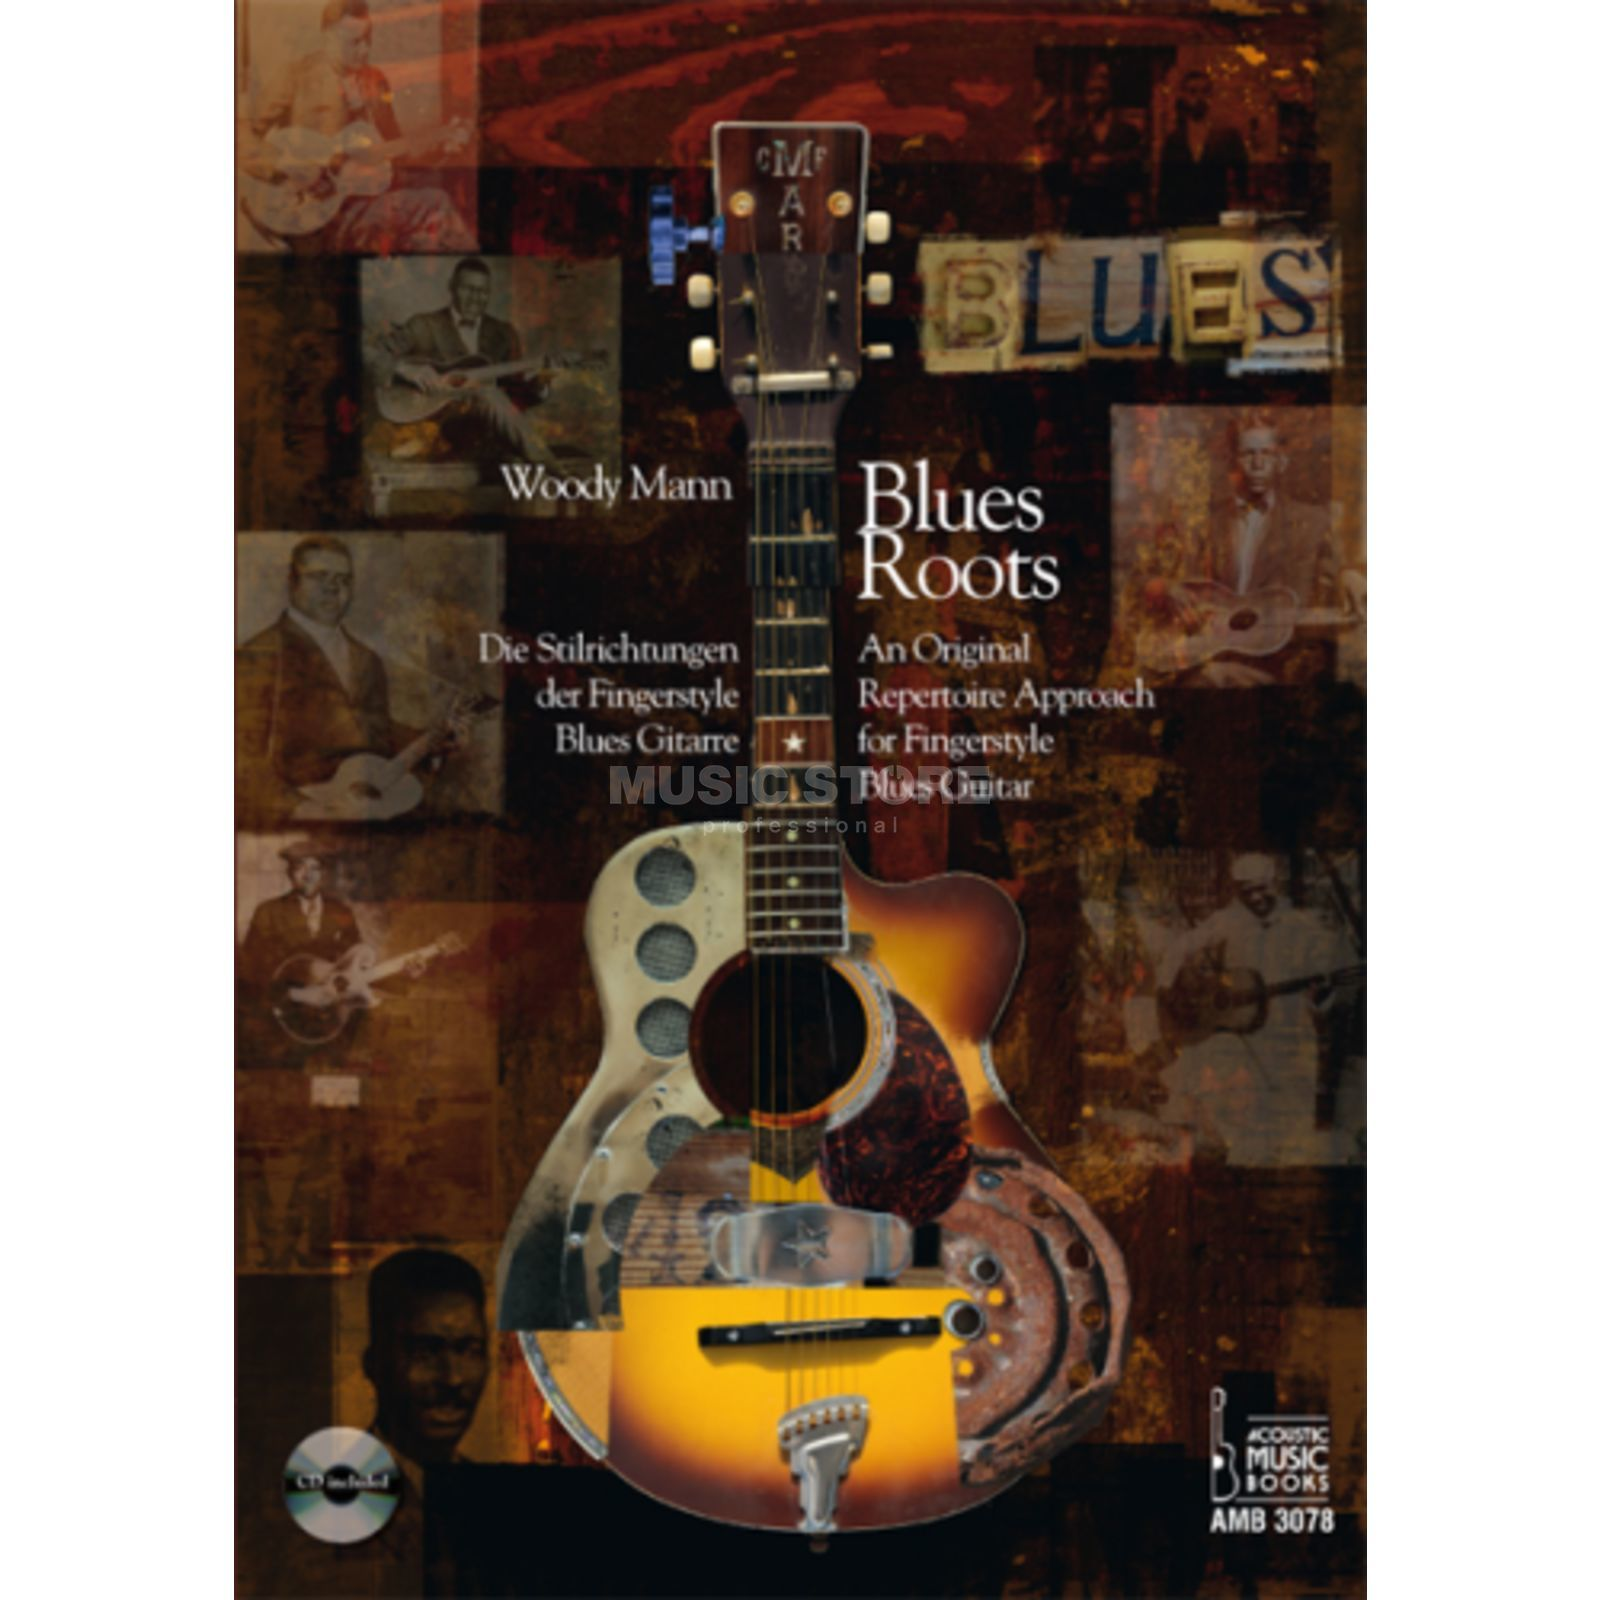 Acoustic Music Books Blues Roots Woody Mann, Buch/CD Produktbillede